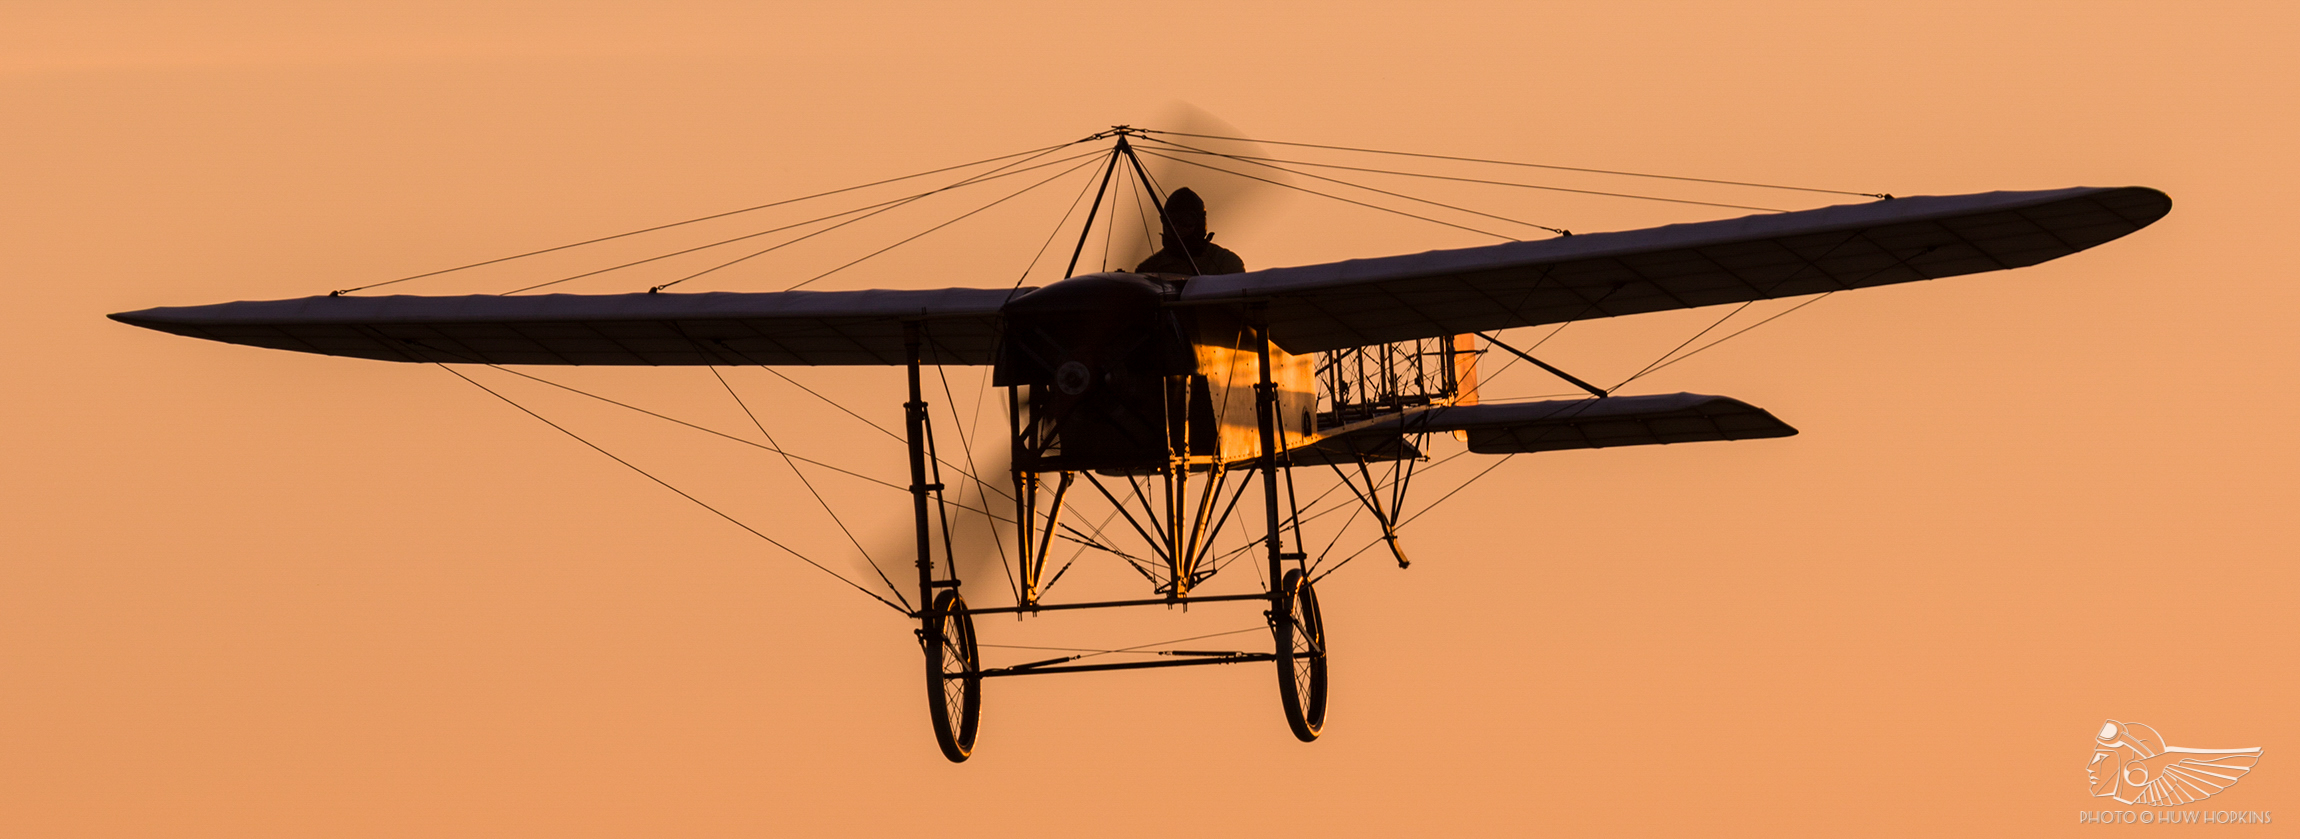 """Unlearn what you know about conventional flight"": Mikael Carlson on flying the Blériot XI"